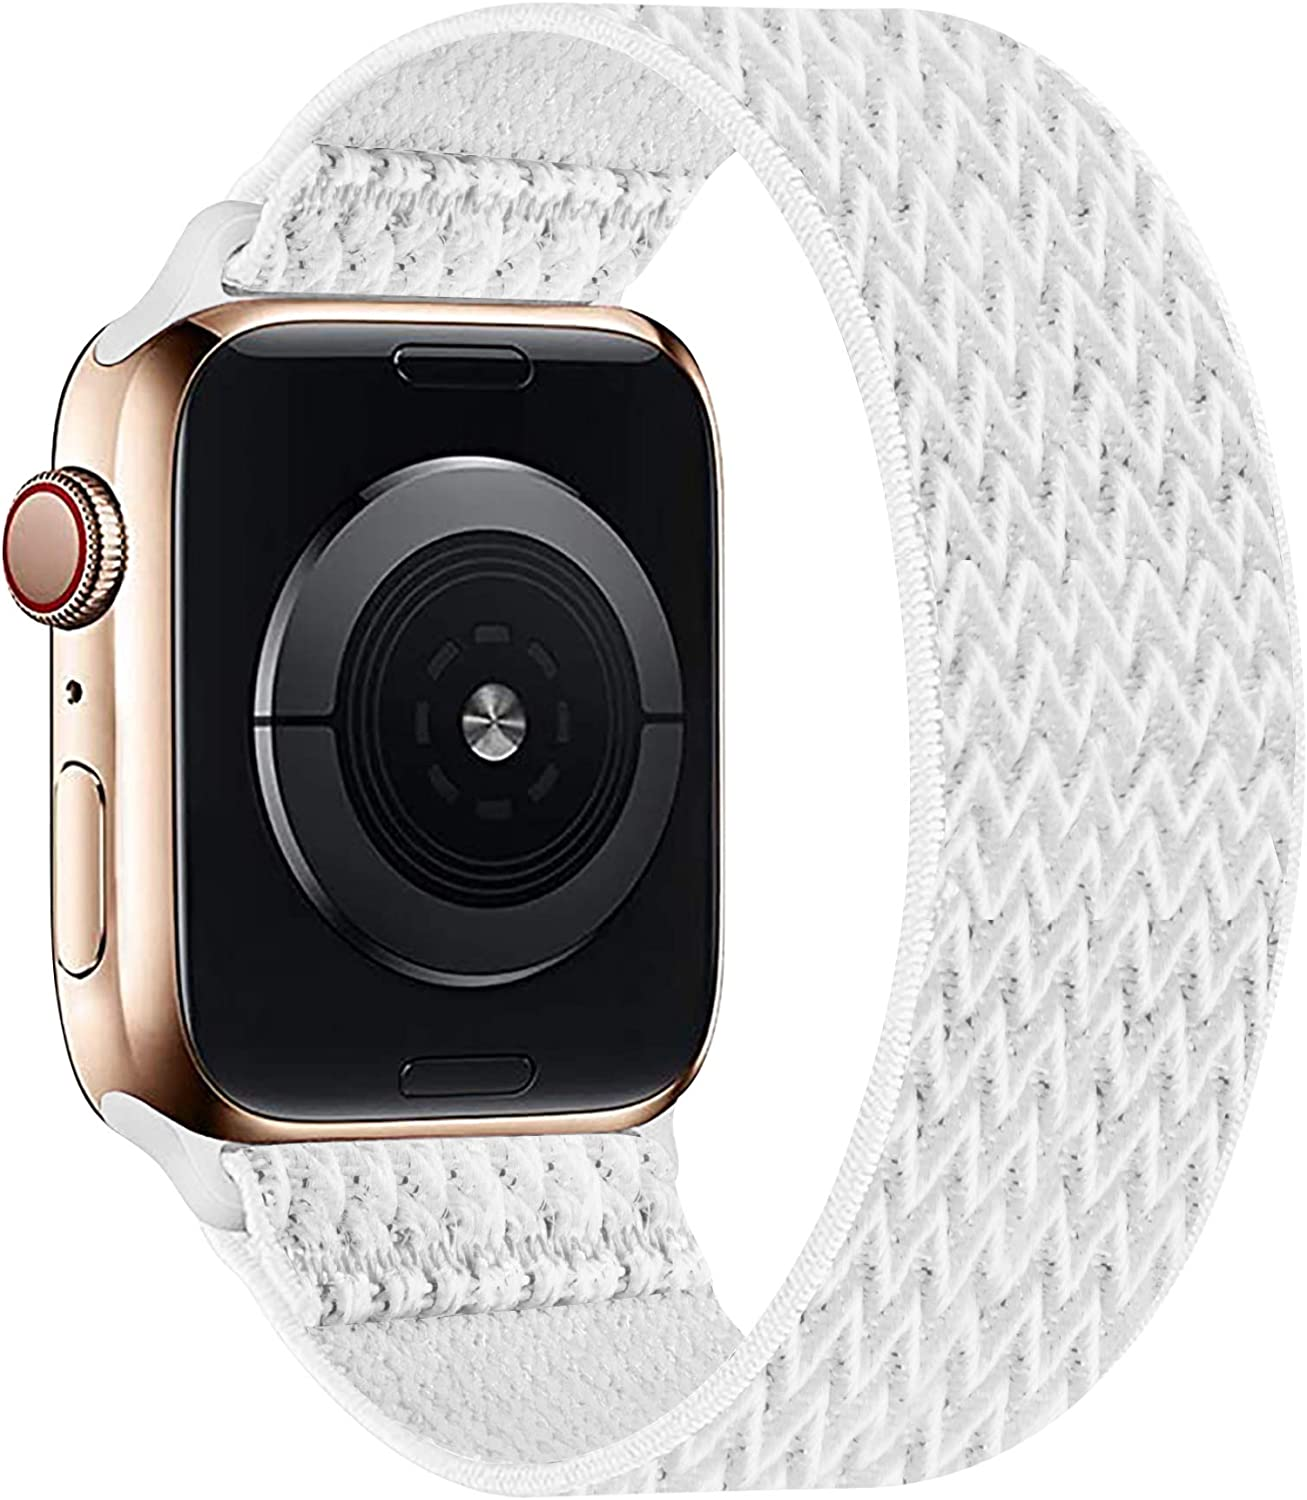 OHCBOOGIE Elastic Nylon Solo Loop Strap Compatible with Apple Watch Band 38mm 40mm 42mm 44mm,Stretchy Braided with No Clasps/Buckles Sport Women Men Wristband for iWatch Series 6/SE/5/4/3/2/1